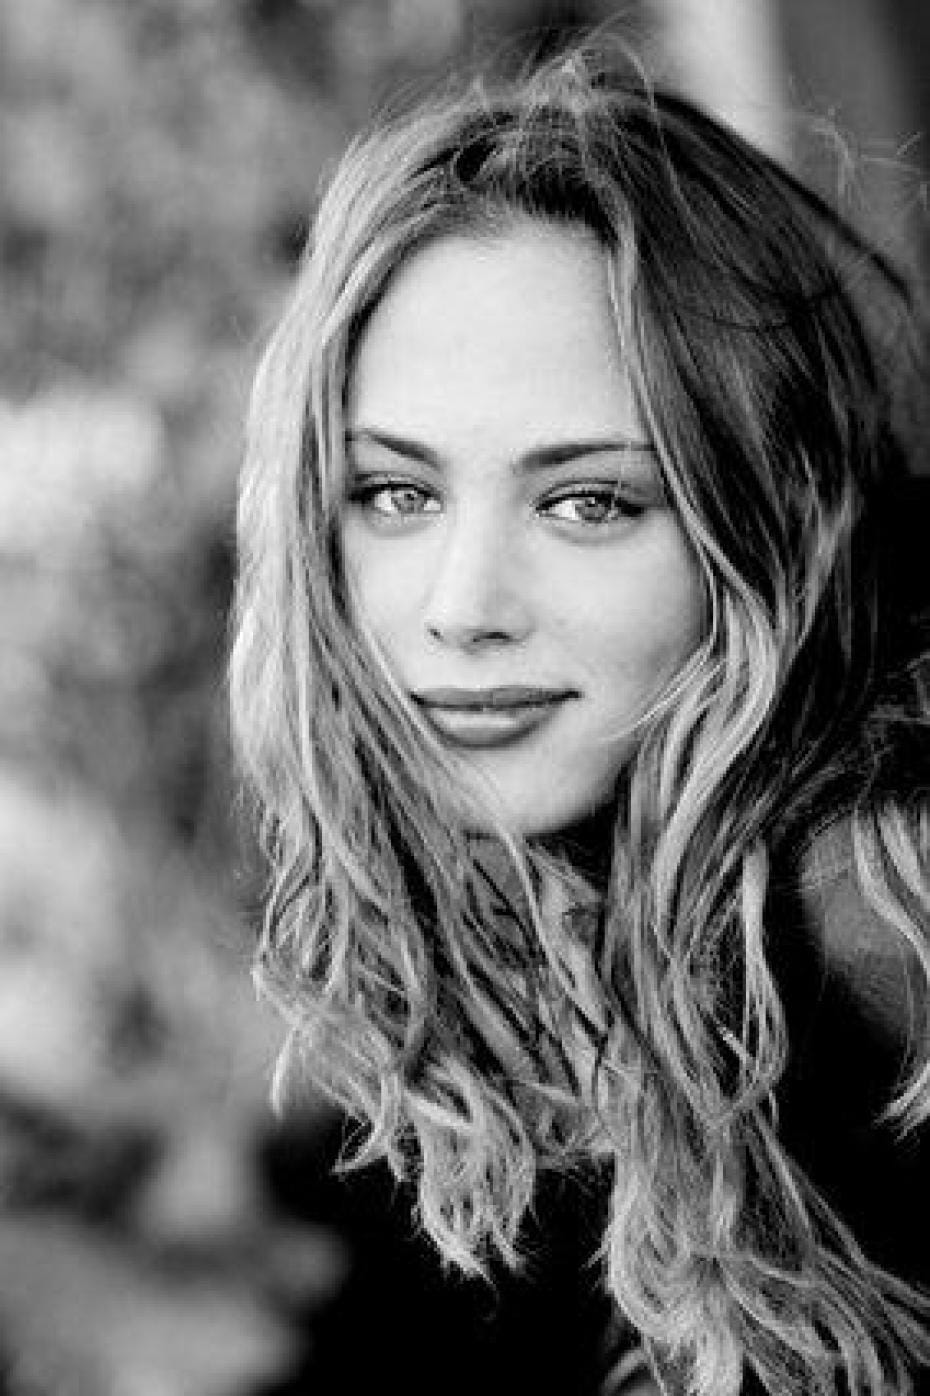 nora arnezeder wikipedianora arnezeder vk, nora arnezeder foto, nora arnezeder wallpaper, nora arnezeder personal life, nora arnezeder maniac, nora arnezeder 2016, nora arnezeder films, nora arnezeder wiki, nora arnezeder and ben barnes, nora arnezeder singing, nora arnezeder - angelique, нора арнезедер фильмография, nora arnezeder youtube, nora arnezeder instagram, nora arnezeder wikipedia, nora arnezeder insta, nora arnezeder singin in the rain, nora arnezeder filmographie, nora arnezeder husband, nora arnezeder movies list